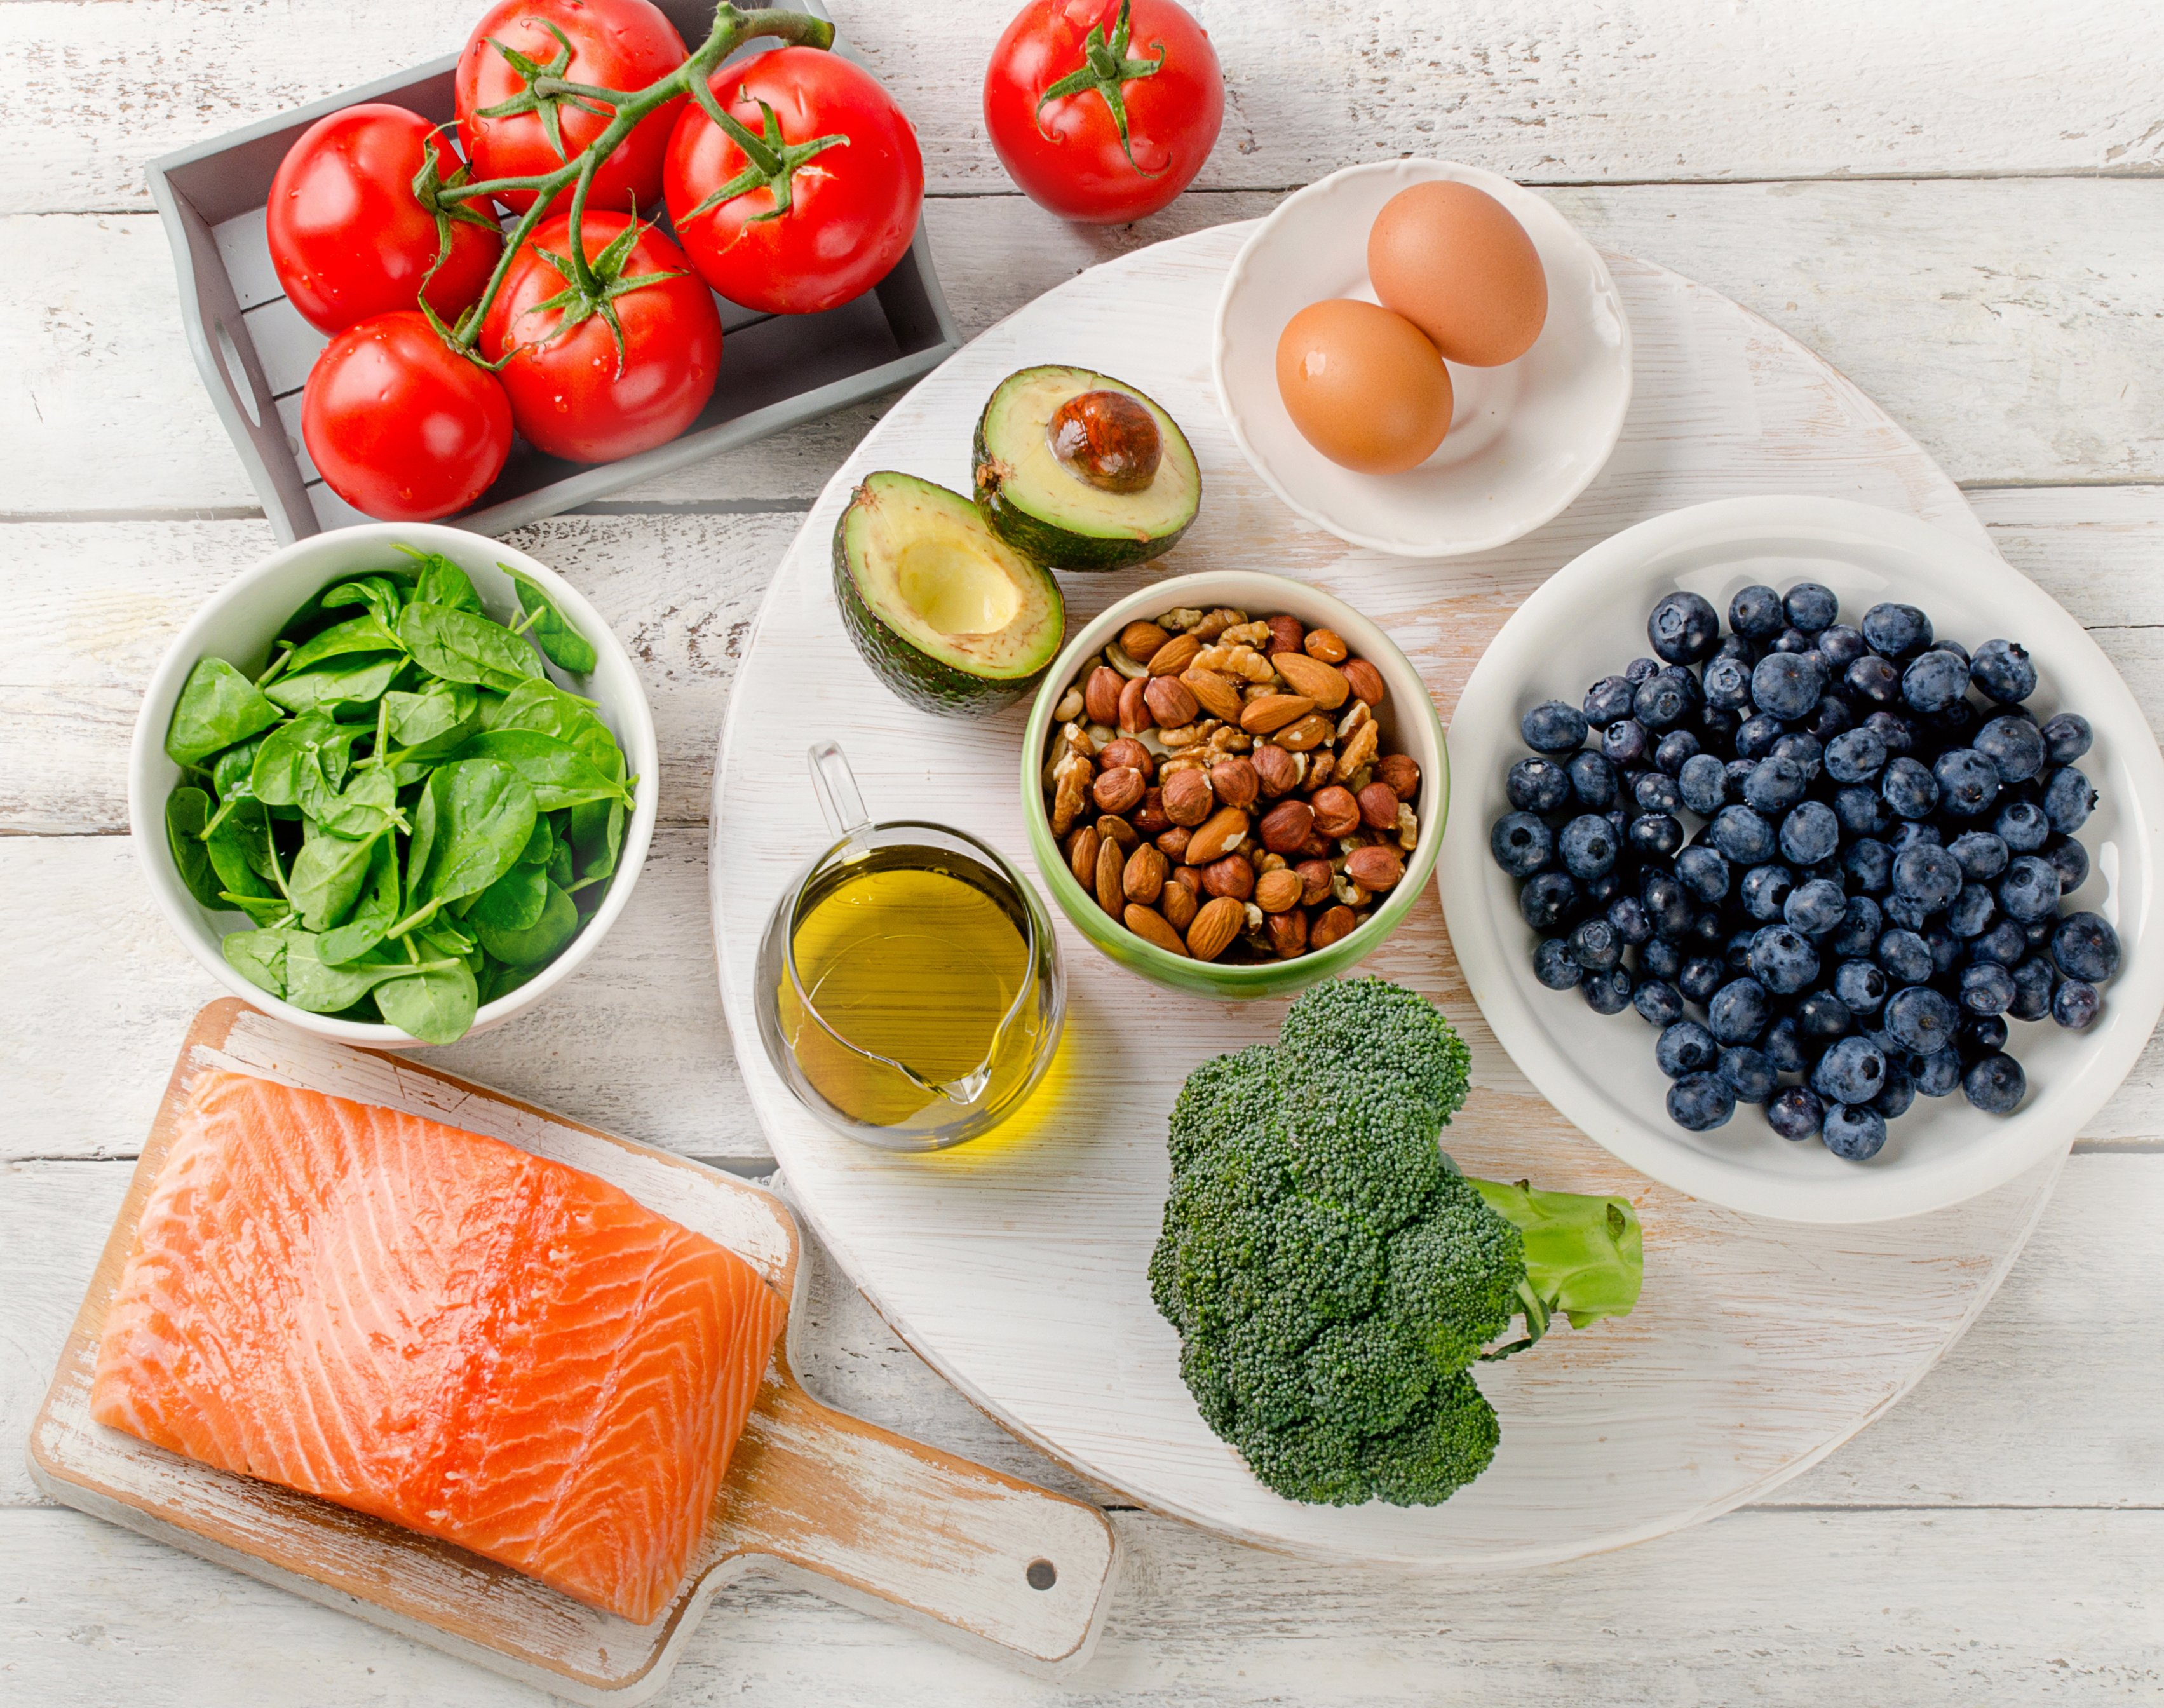 Why is nutrition important when exercising?